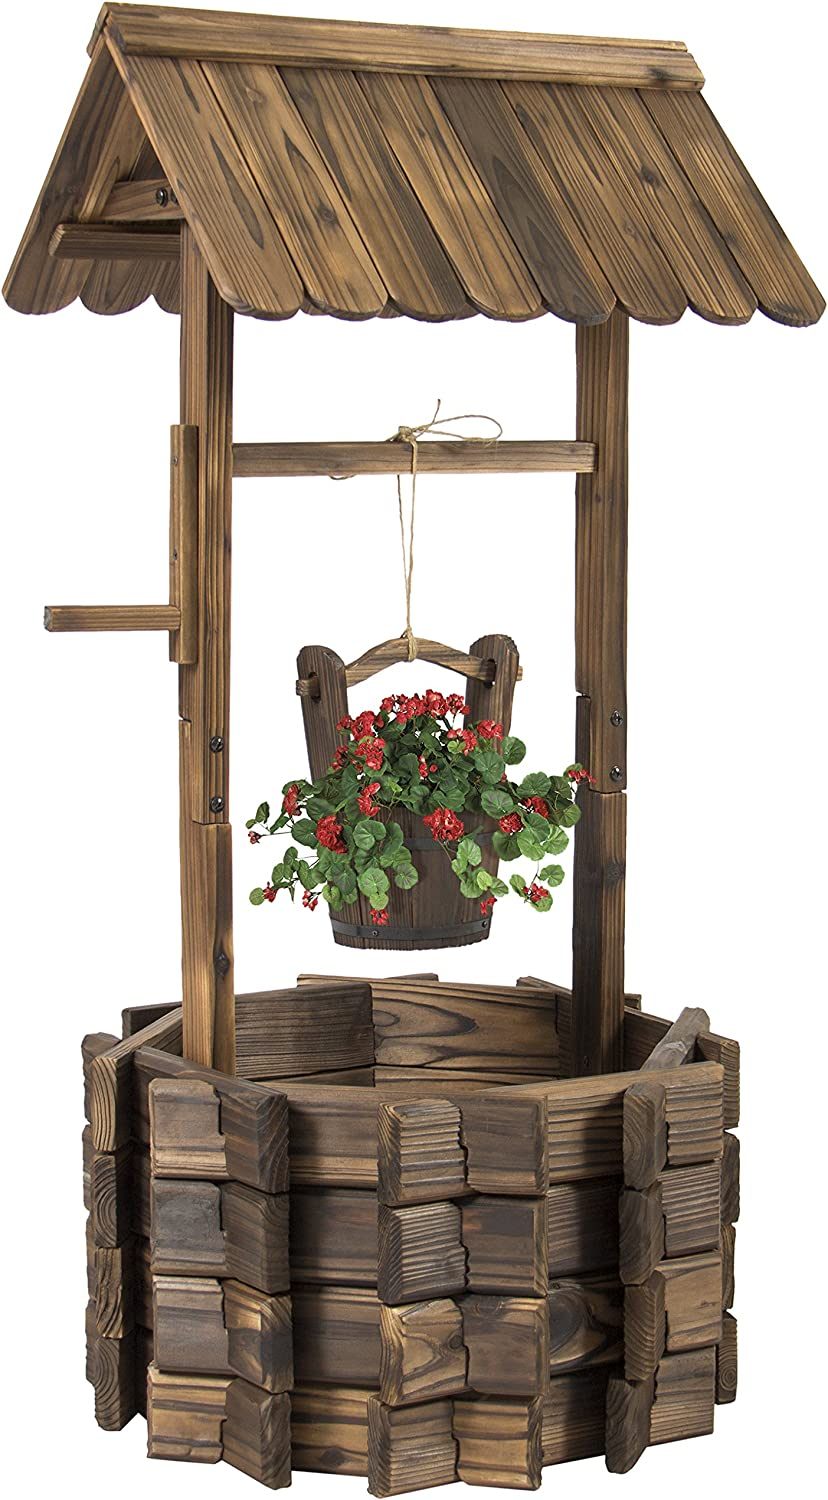 Best Choice Products Wooden Wishing Well Bucket Flower Planter Patio Garden Outdoor Home D cor